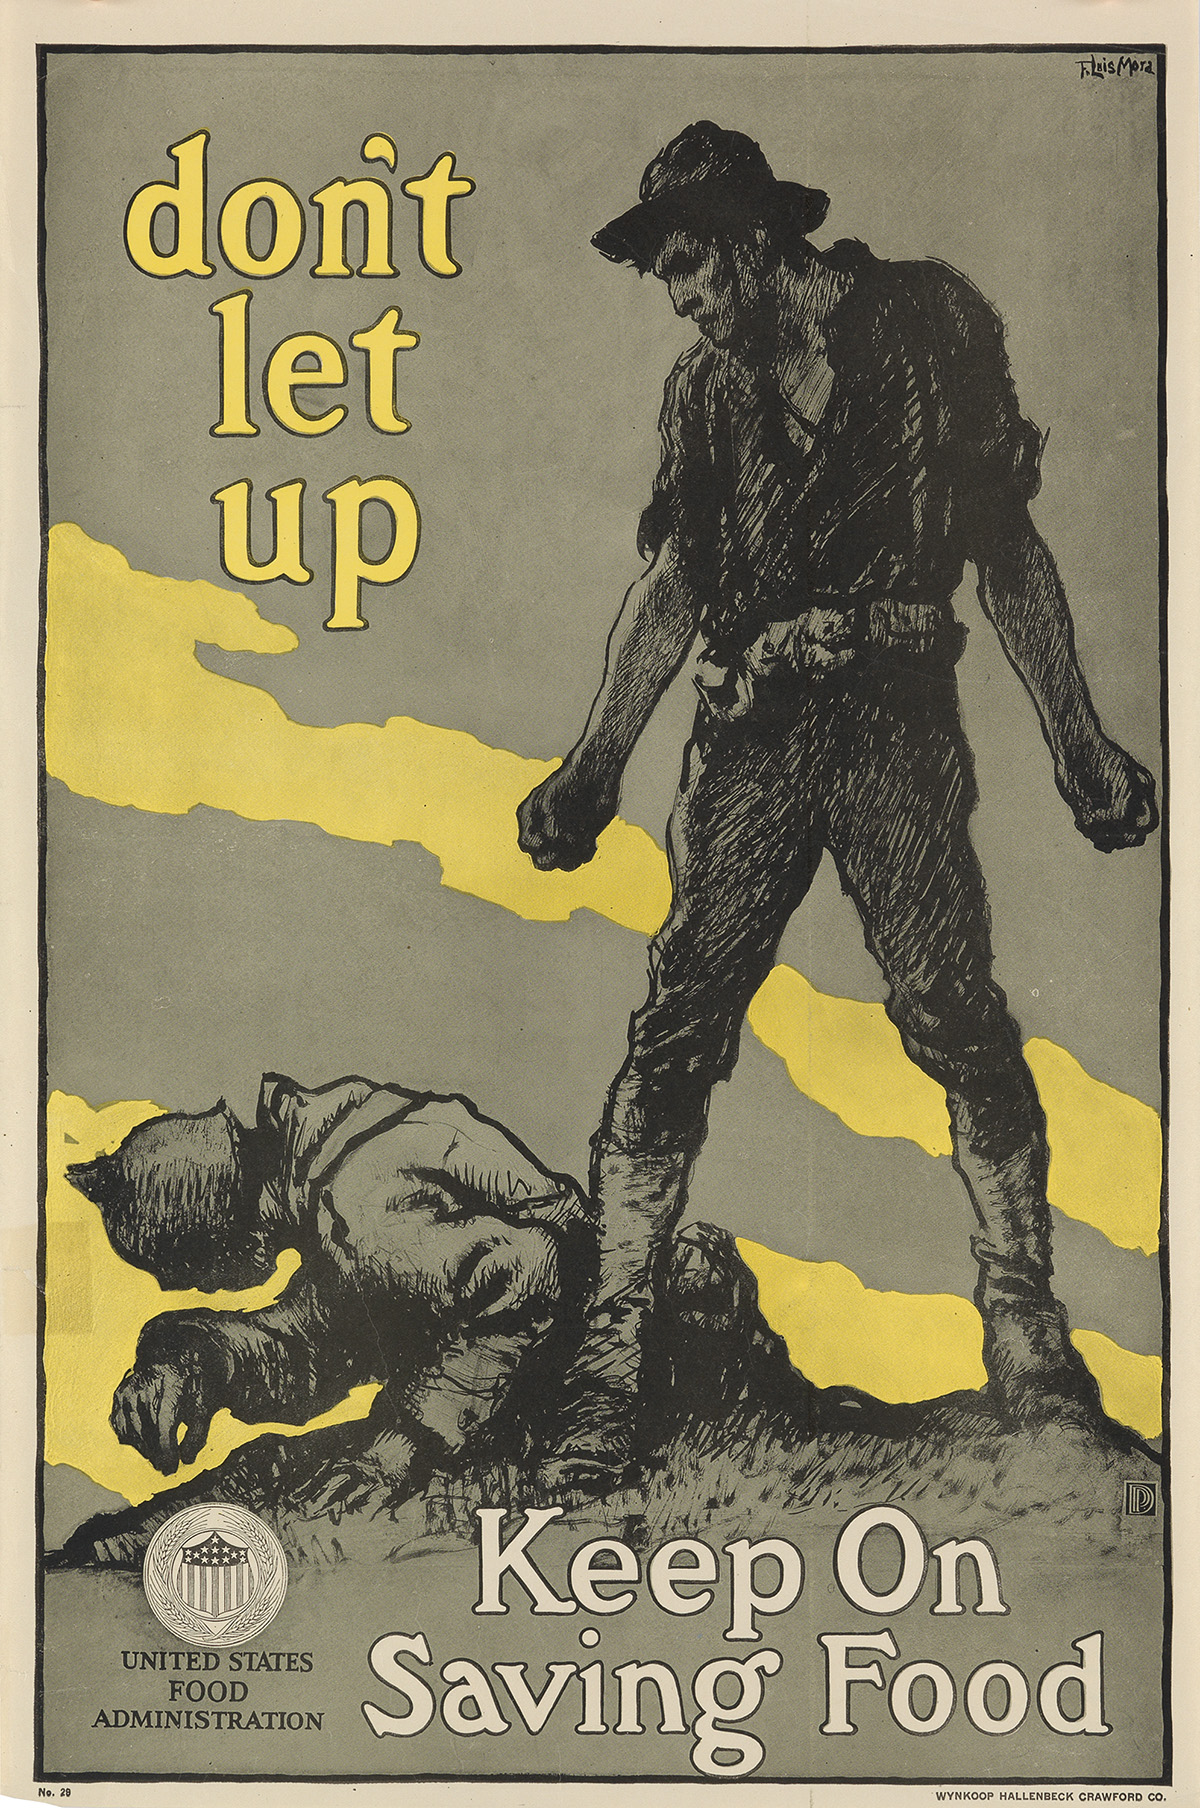 VARIOUS ARTISTS. [WORLD WAR I.] Group of 29 posters. Sizes vary.